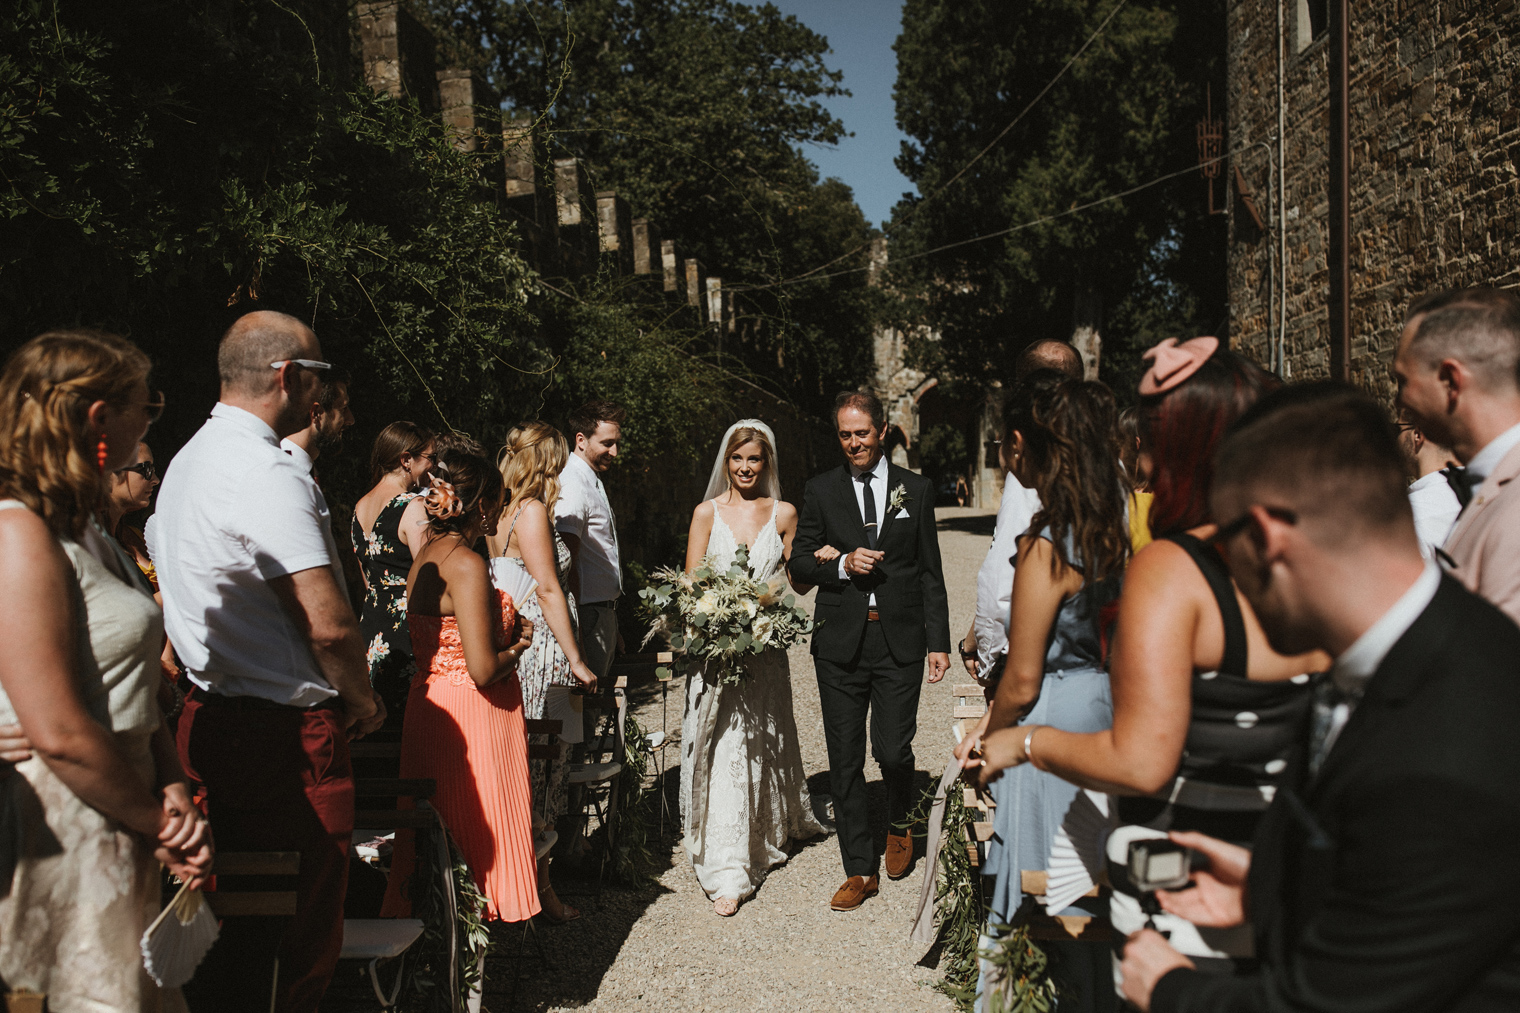 Bride and Father walking down aisle at Tuscan Castle Wedding ceremony